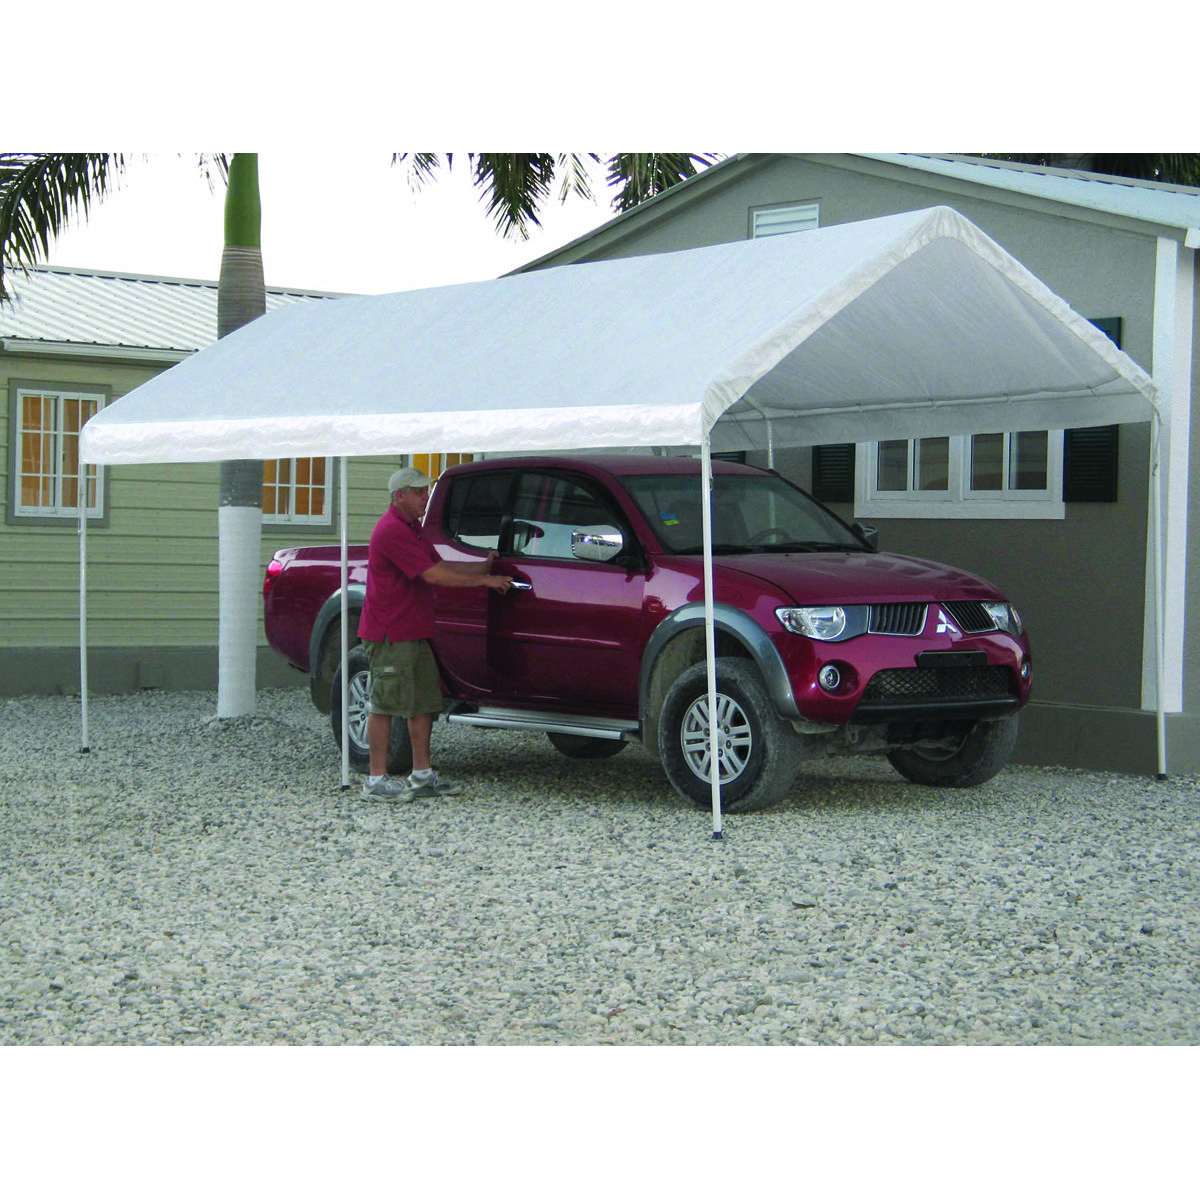 10 Ft. x 20 Ft. Portable Car Canopy in 2020 | Car canopy ...